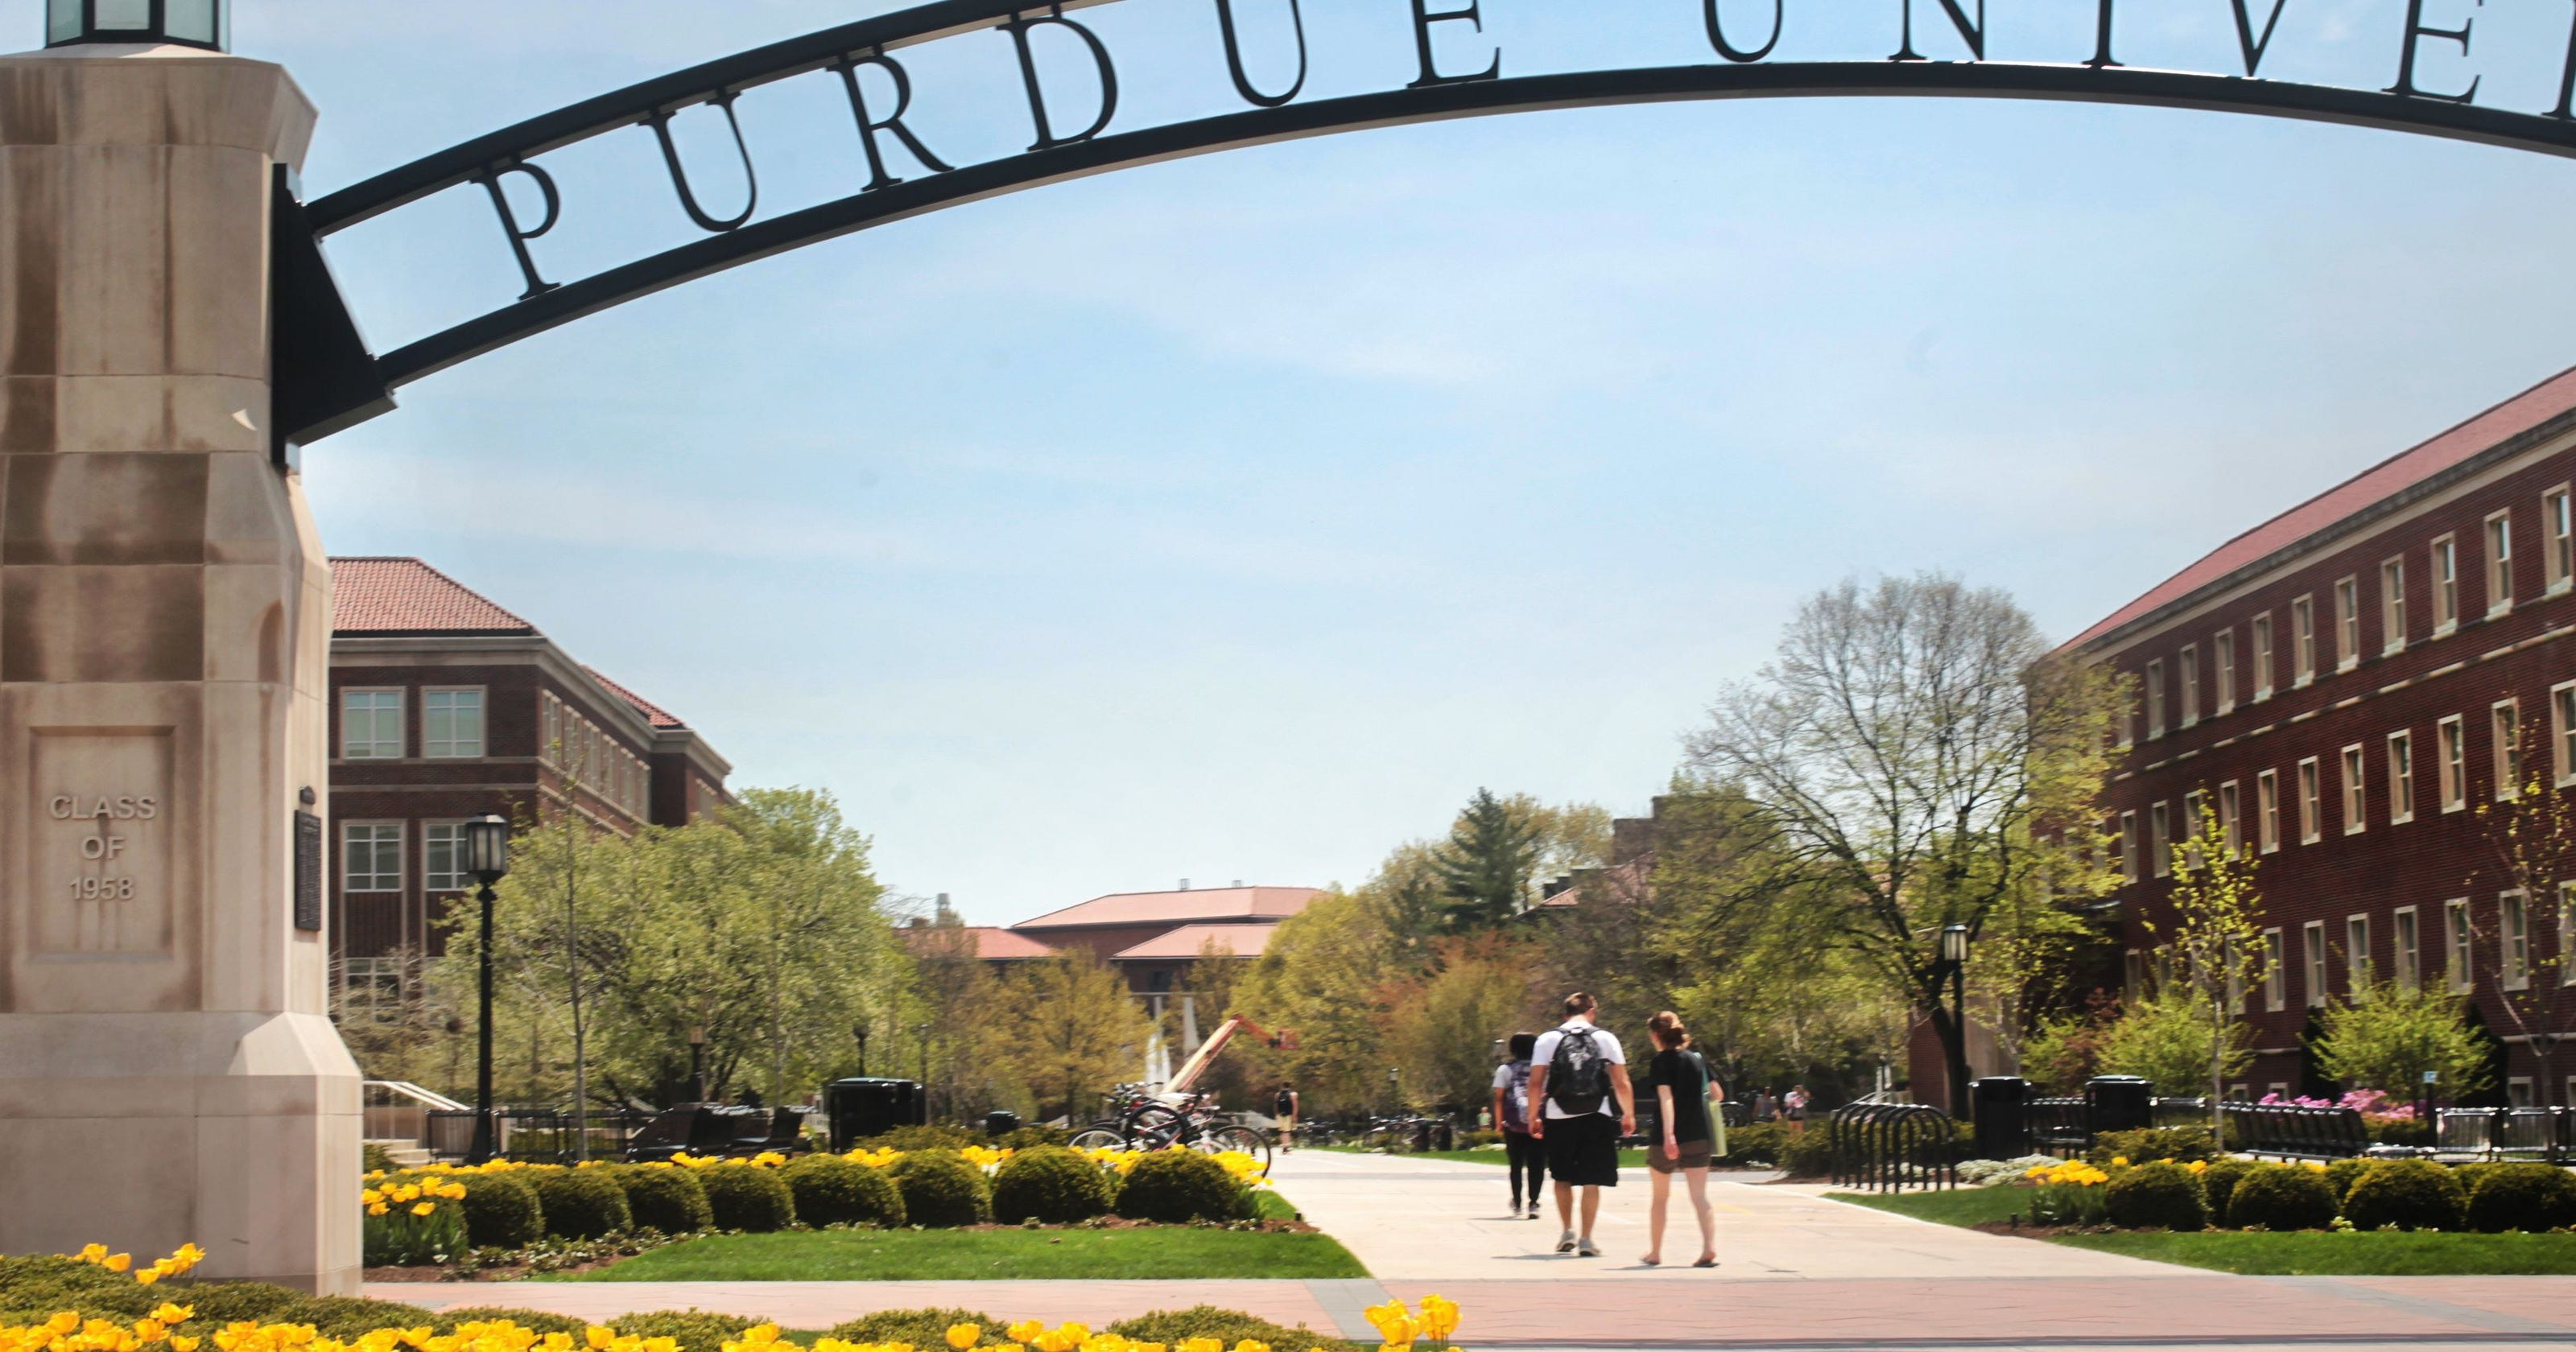 purdue students says andy gross harassed woman during offensive set